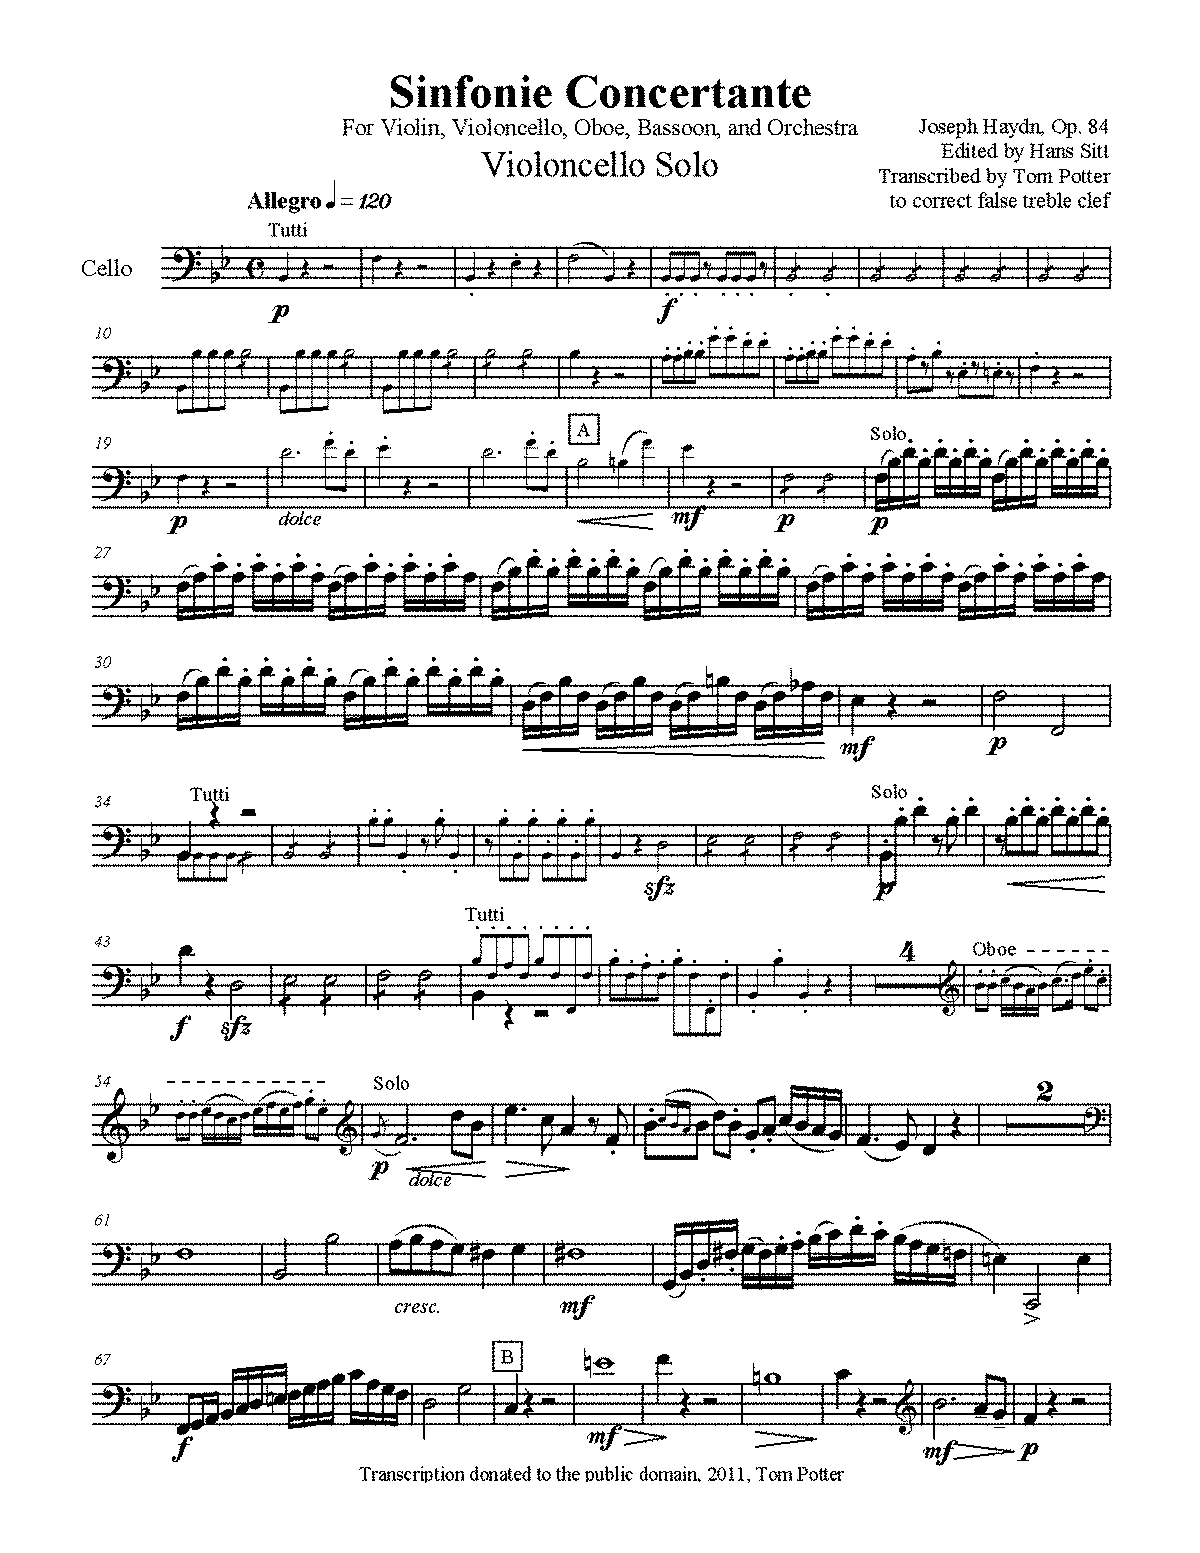 PMLP71618-Haydn sinfonie concertante cello Corrected.pdf